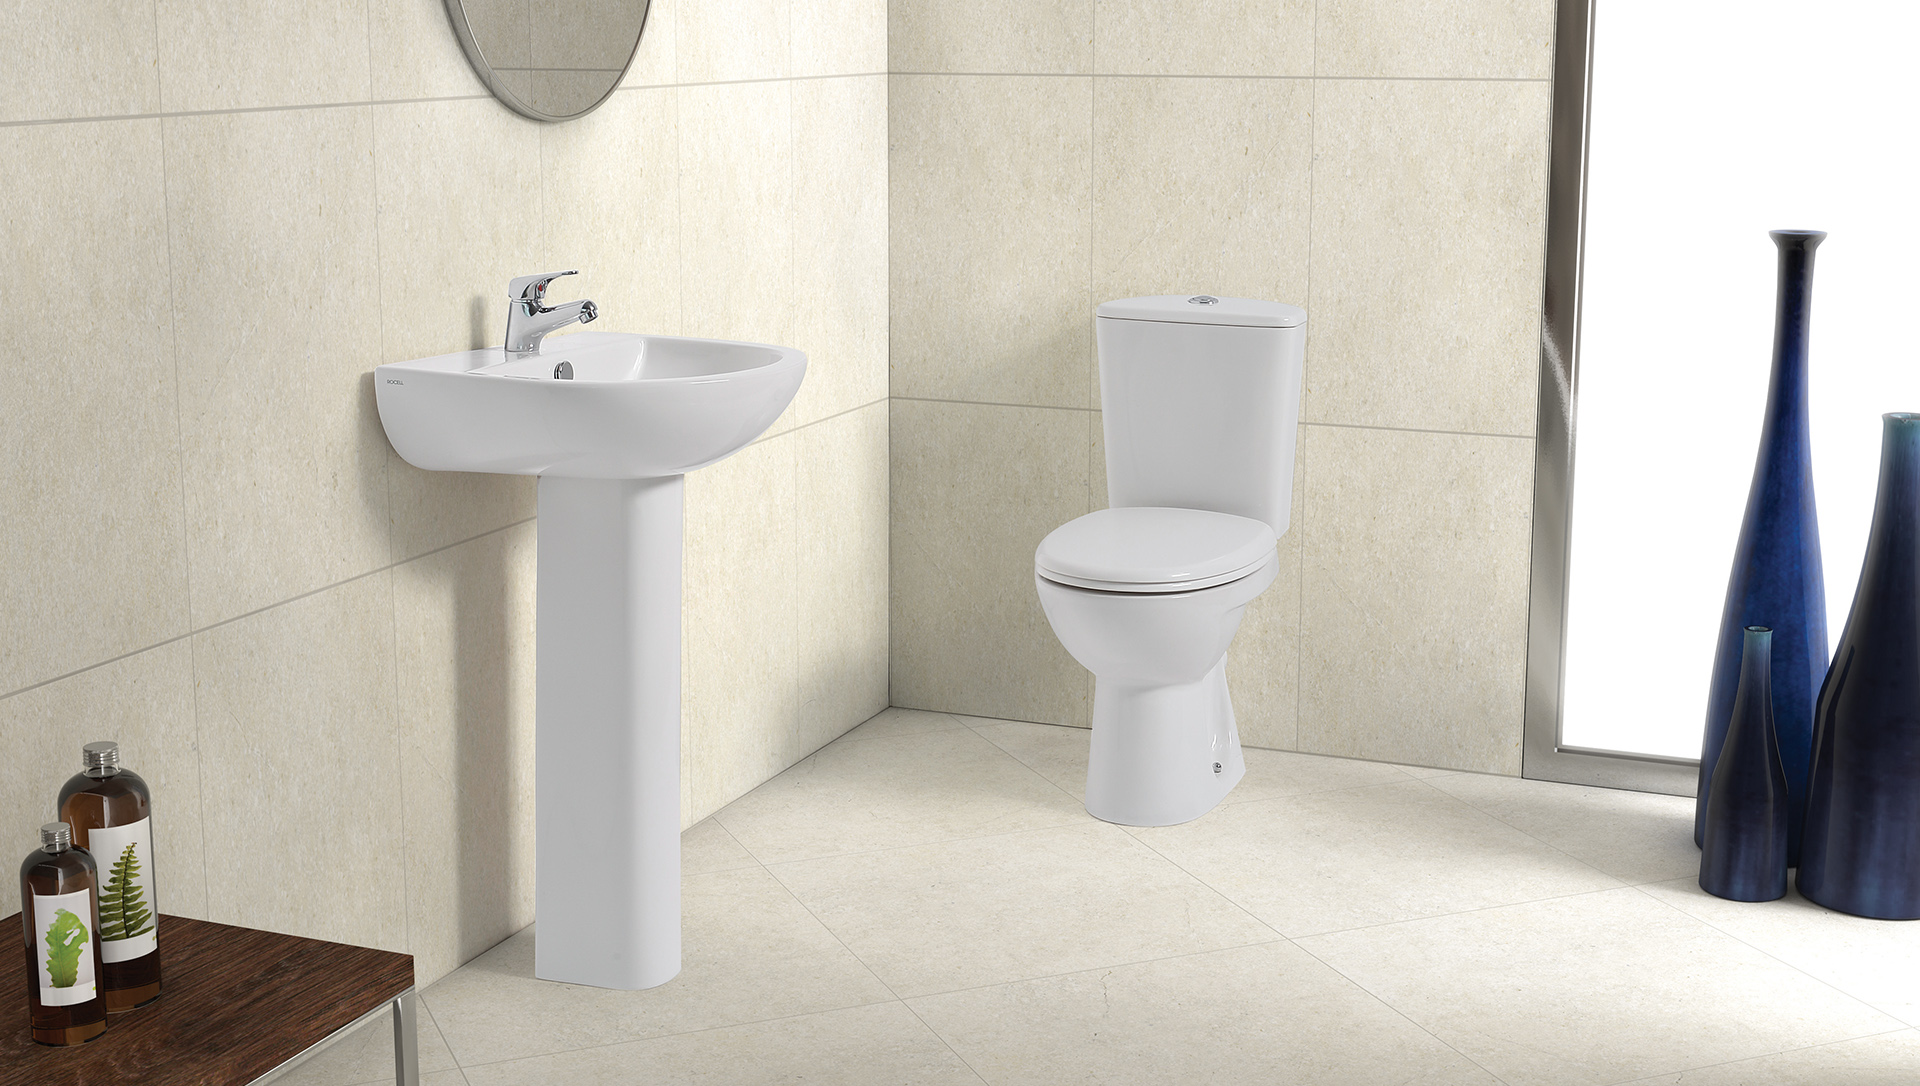 Rocell Bathroom Set Prices In Sri Lanka - Bathroom Design ...